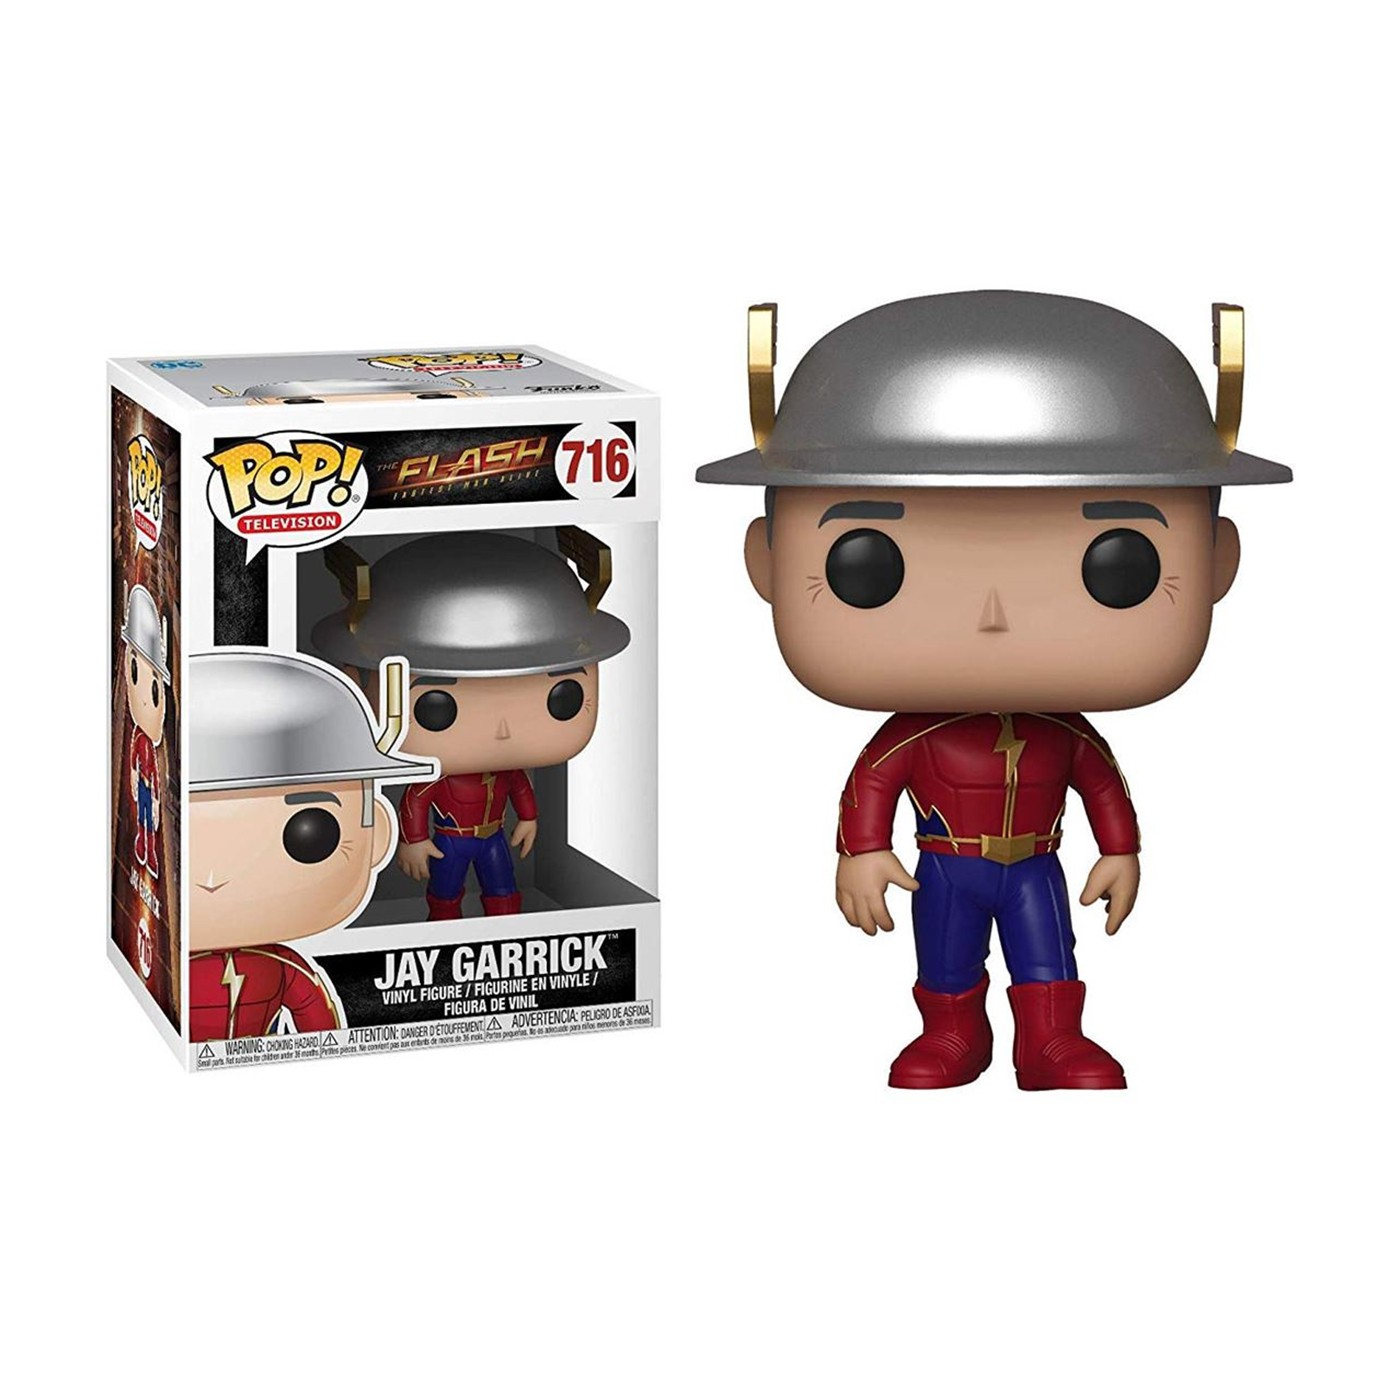 Jay Garrick The Flash TV Funko Pop Vinyl Figure